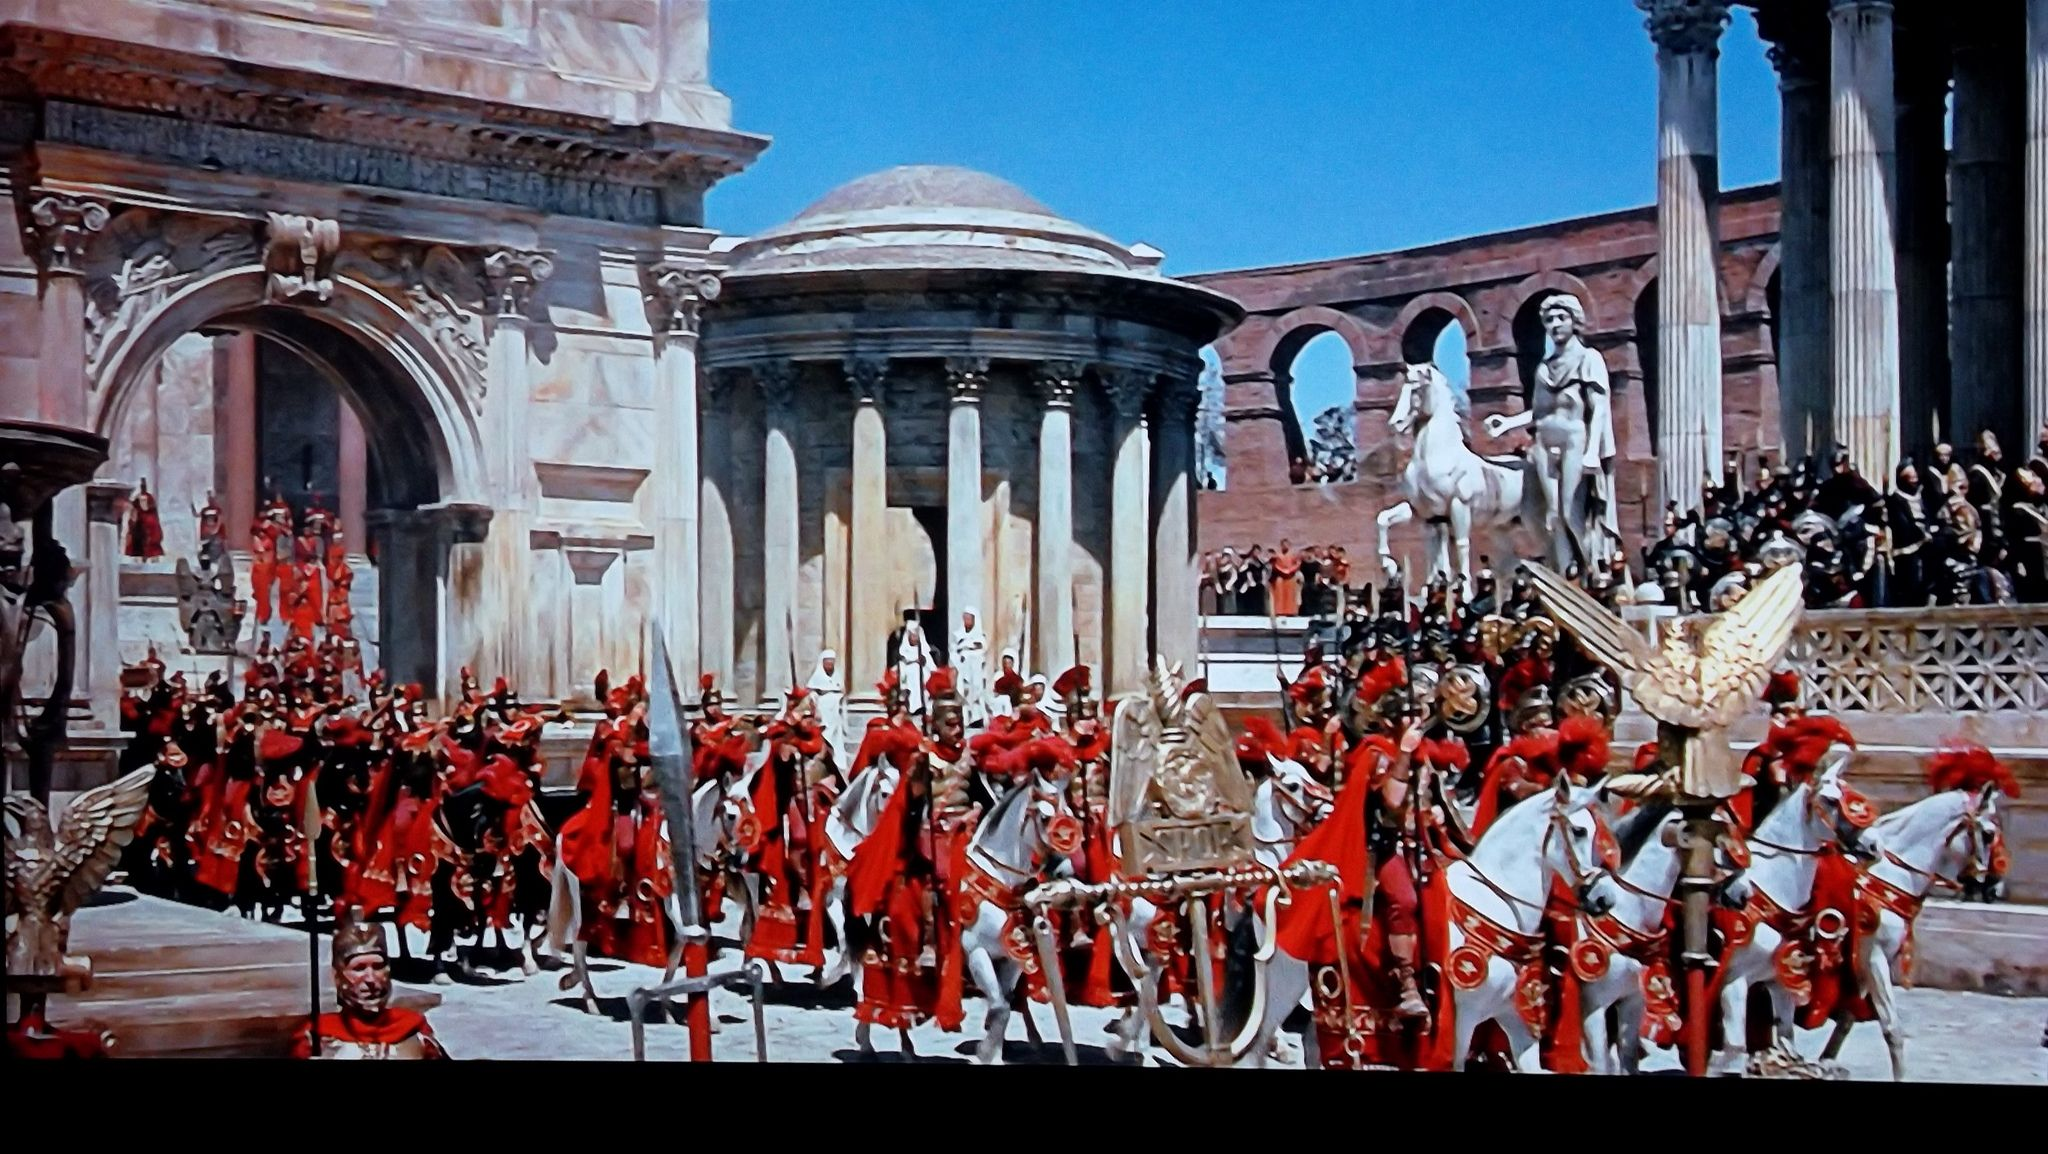 the collapse of the roman empire The fall of rome the roman empire was seriously declining the economy began to stagnate too much money was being used to simply maintain the borders and unity of the empire the cities began to deteriorate.